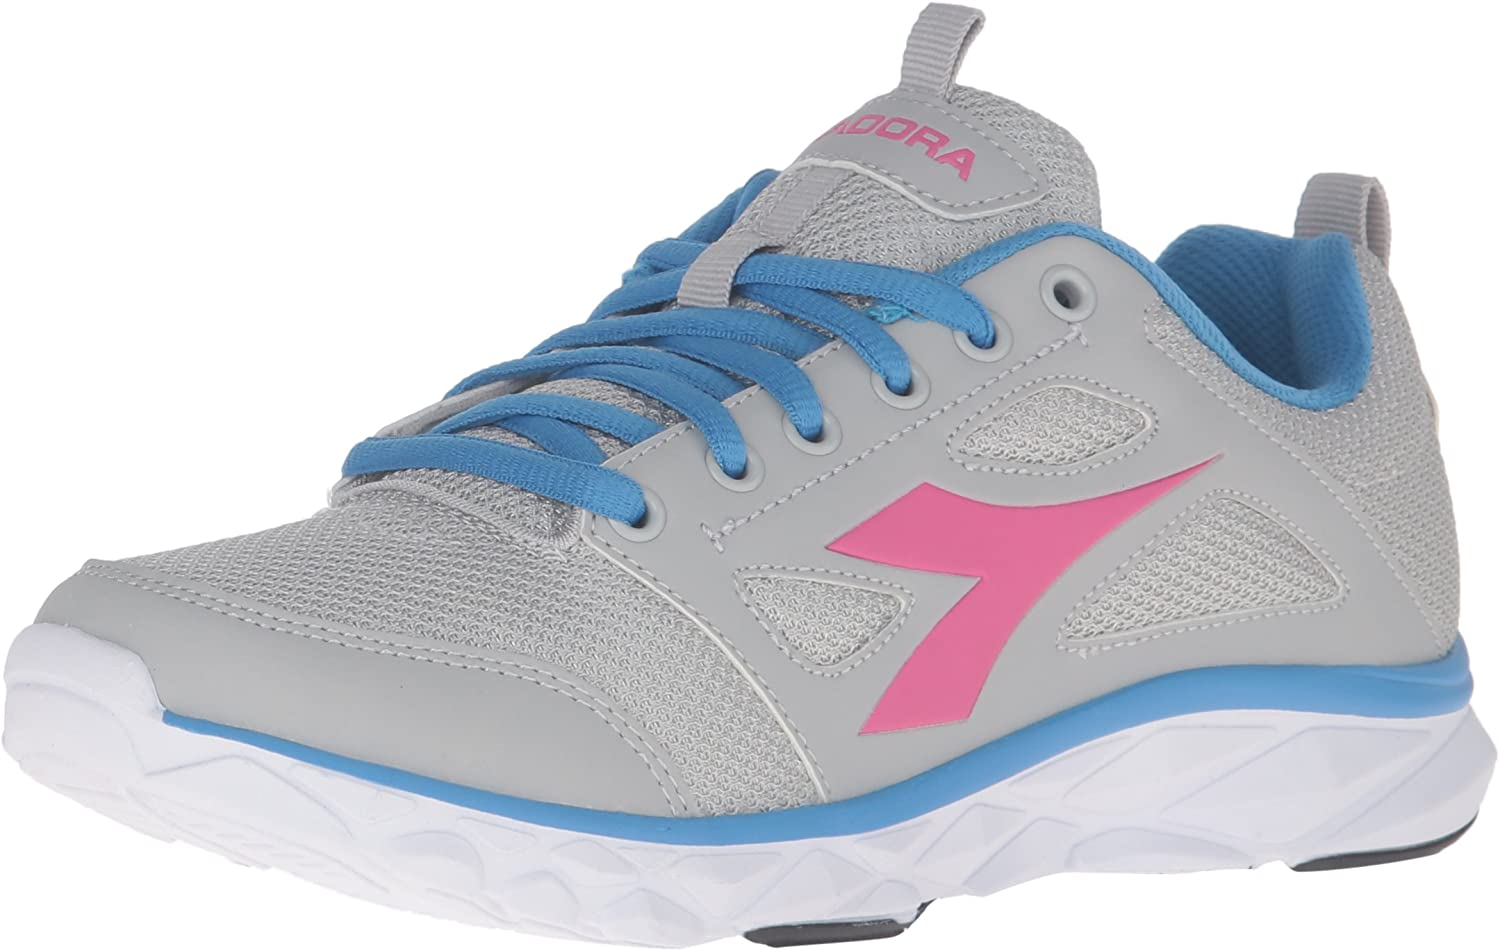 Diadora Women's Hawk 6 W Running shoes